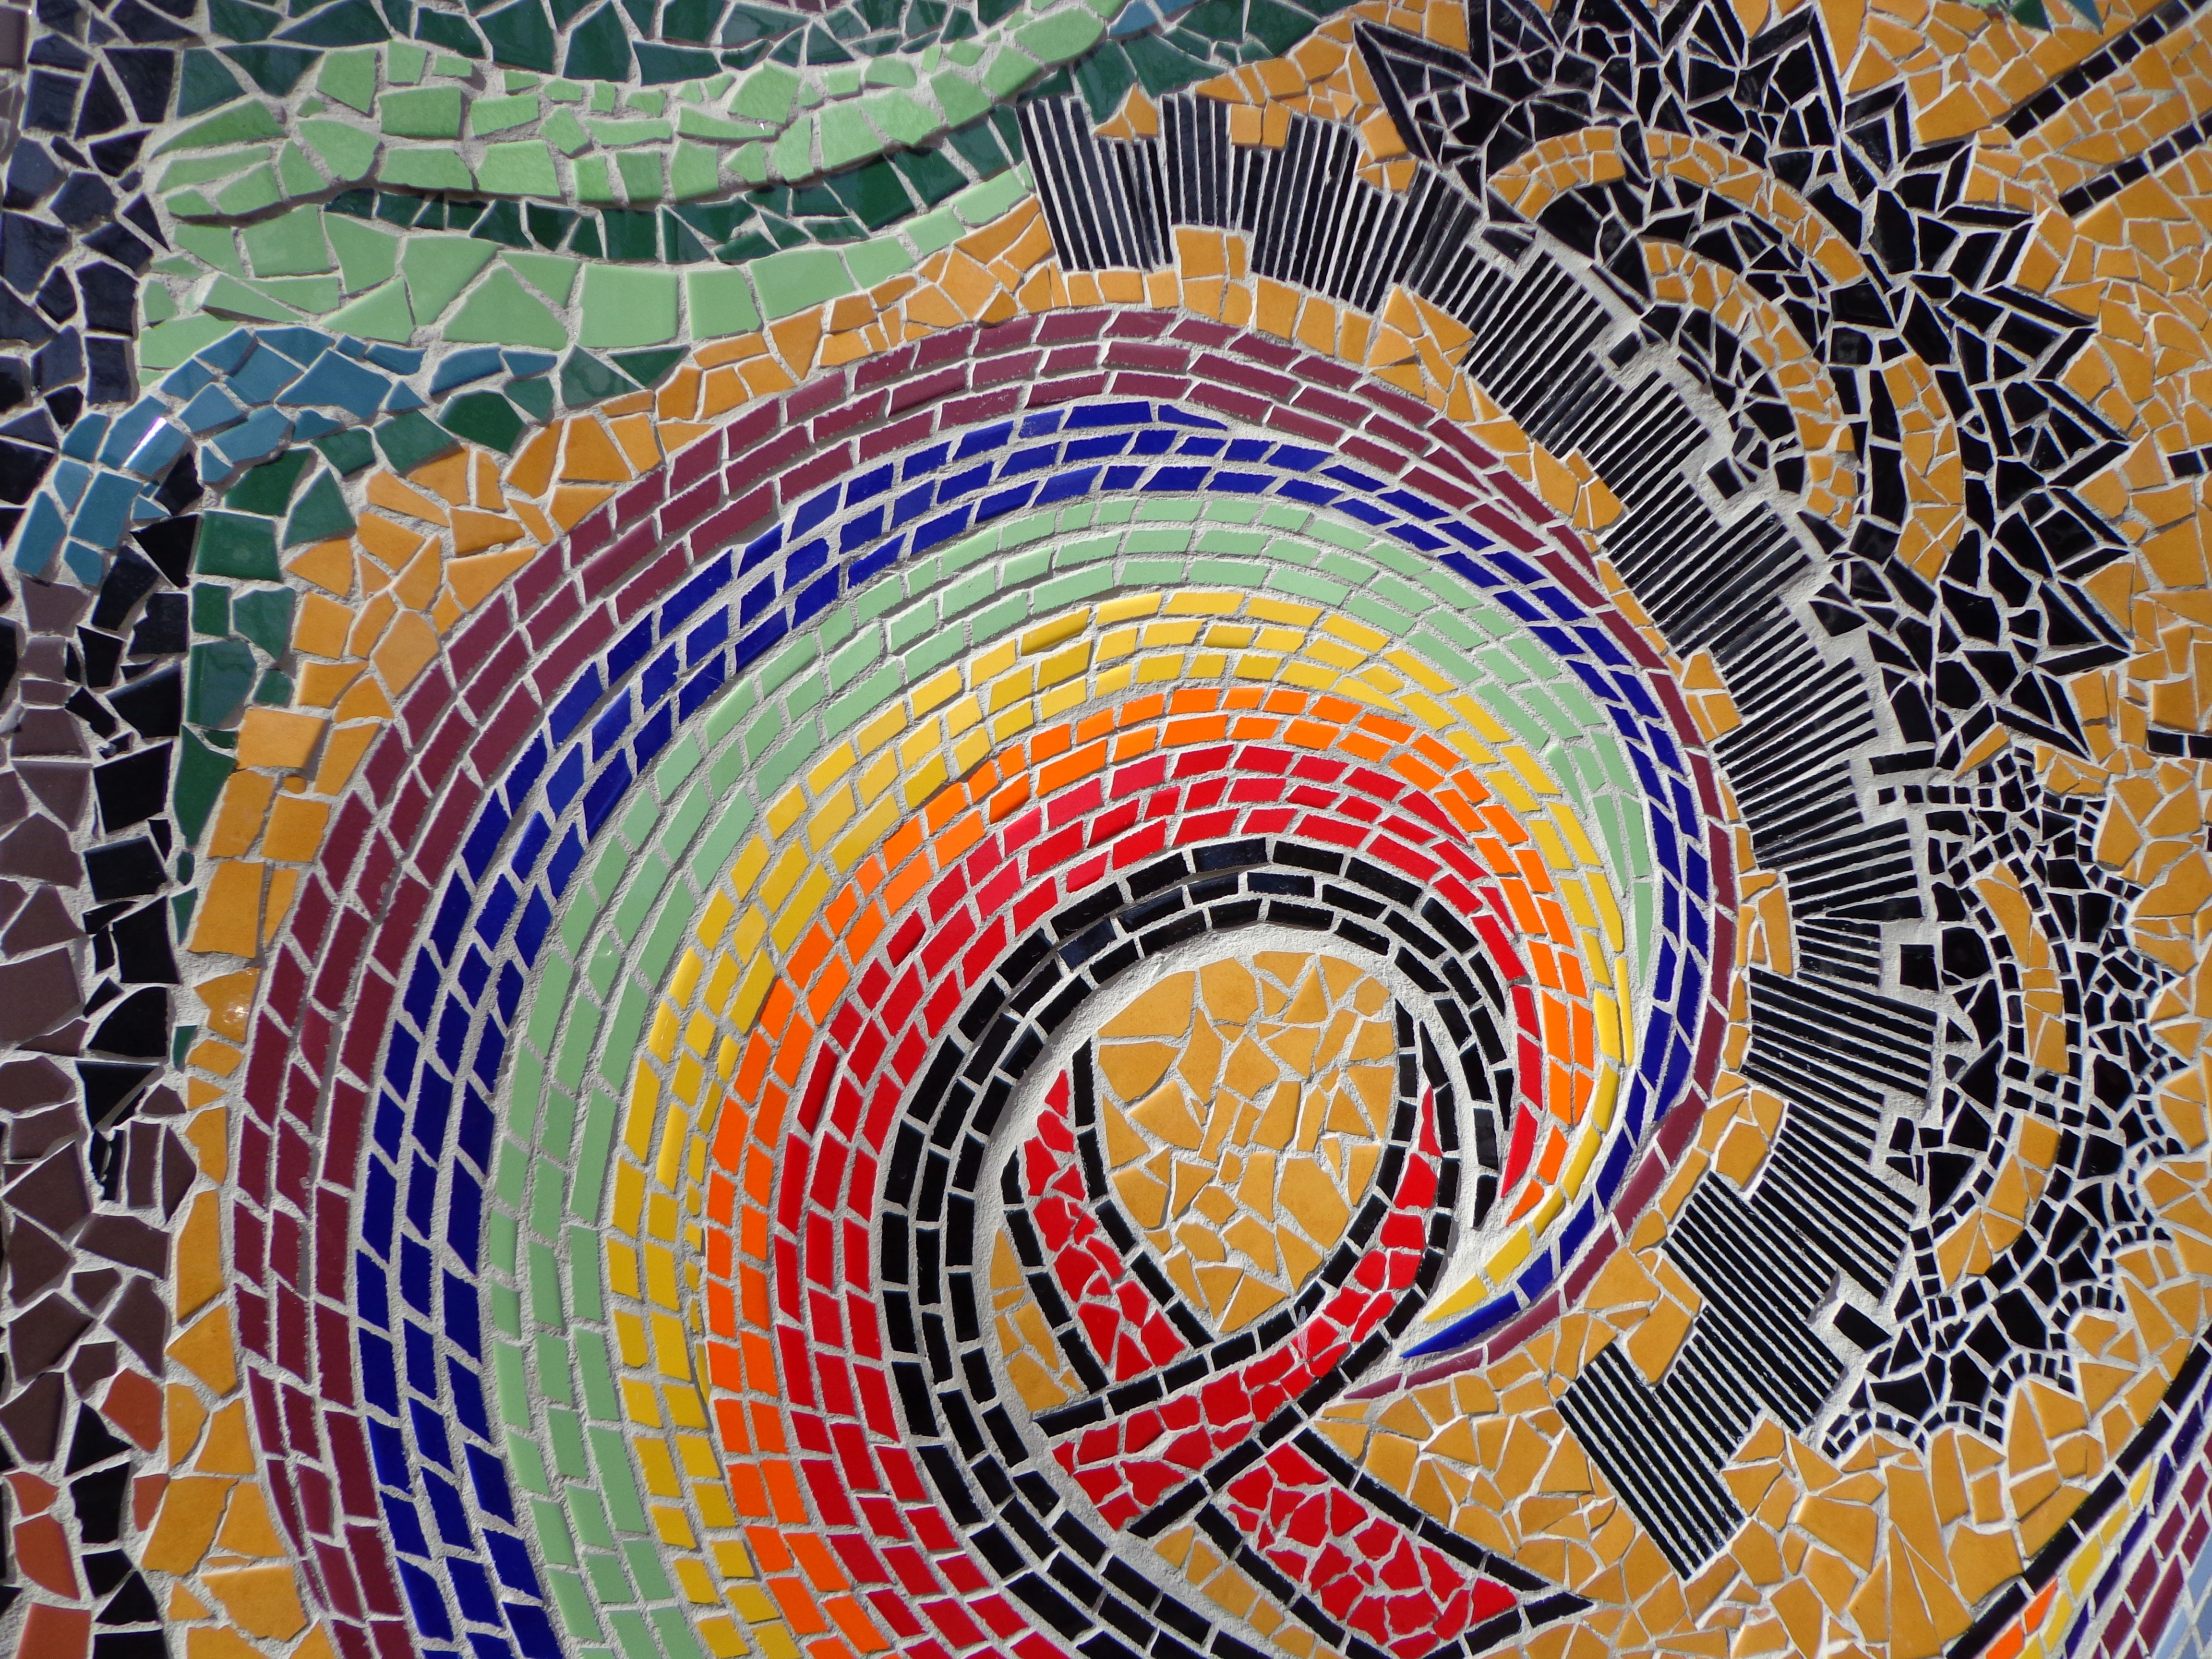 [Image description: A photograph close up of a section of the mural showing the red AIDS ribbon and the spiral rainbow emerging out of it]